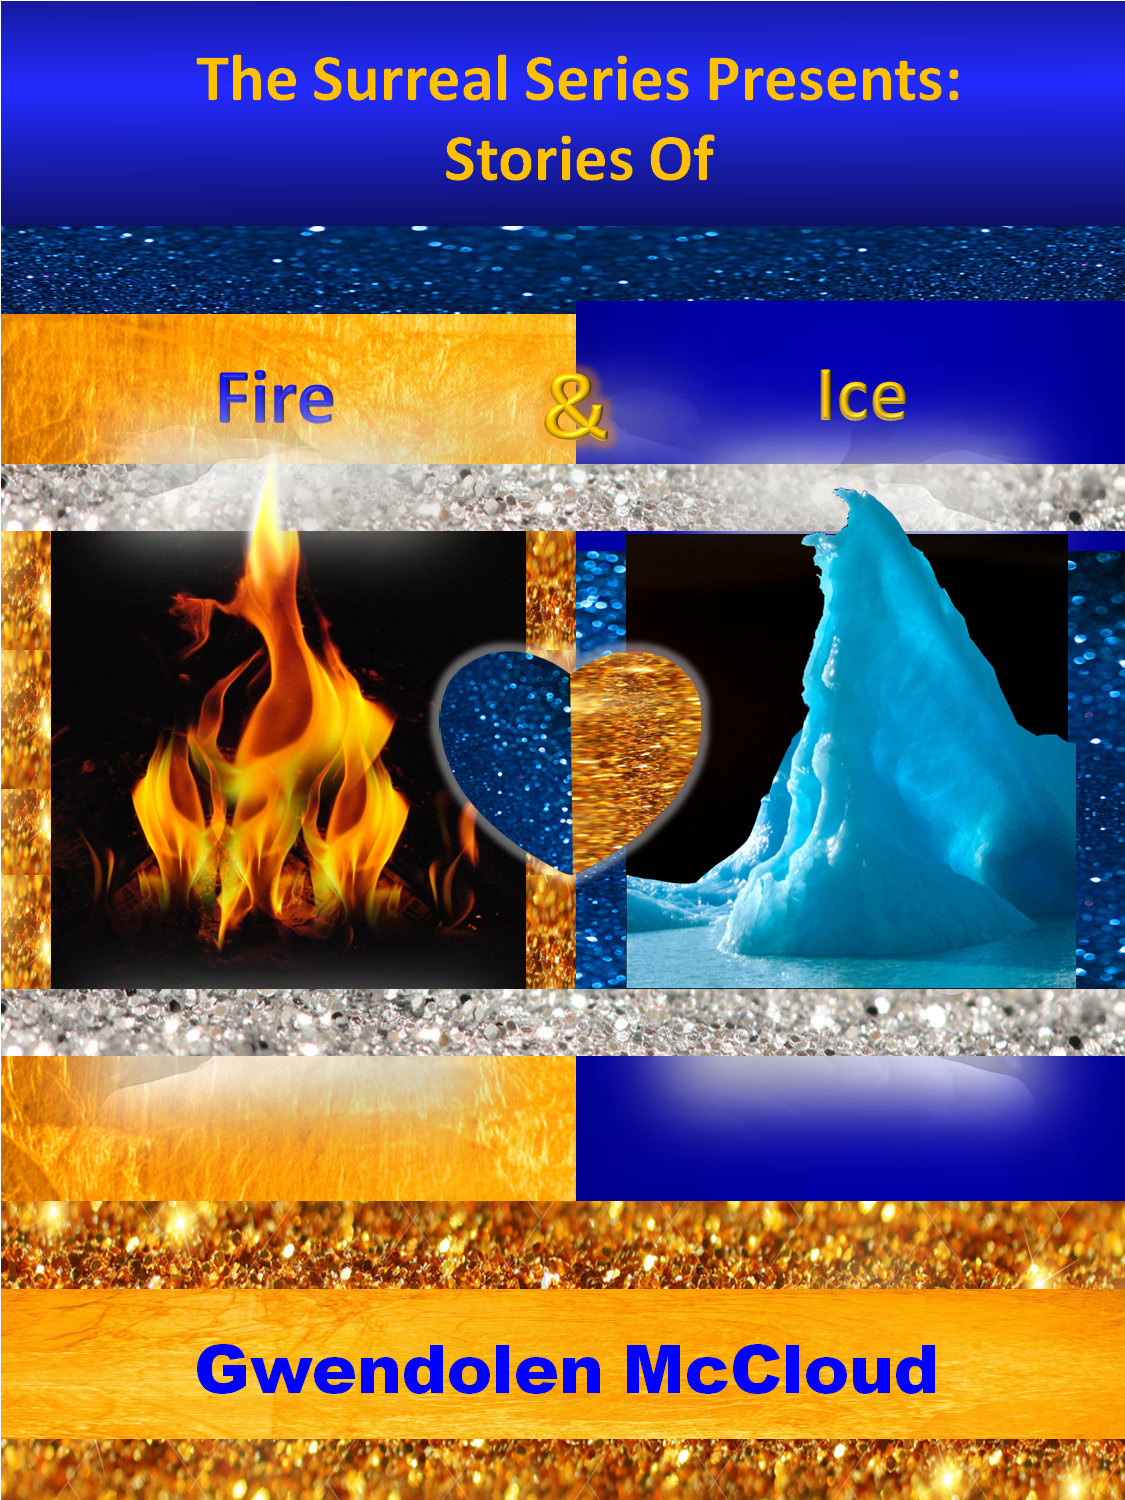 Fire & Ice Stories.png